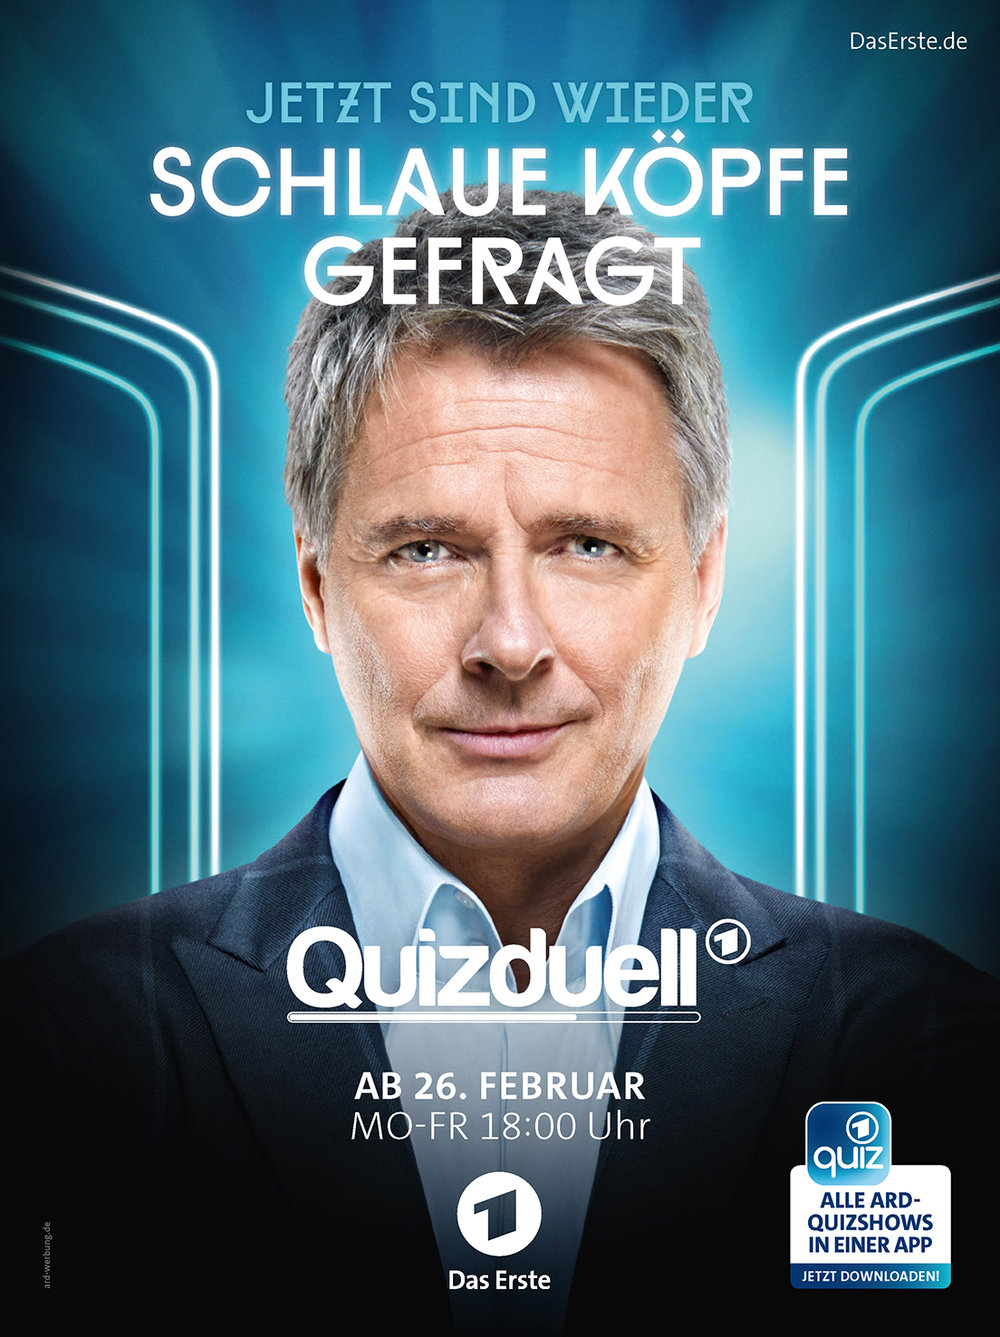 A_Quizduell.jpg